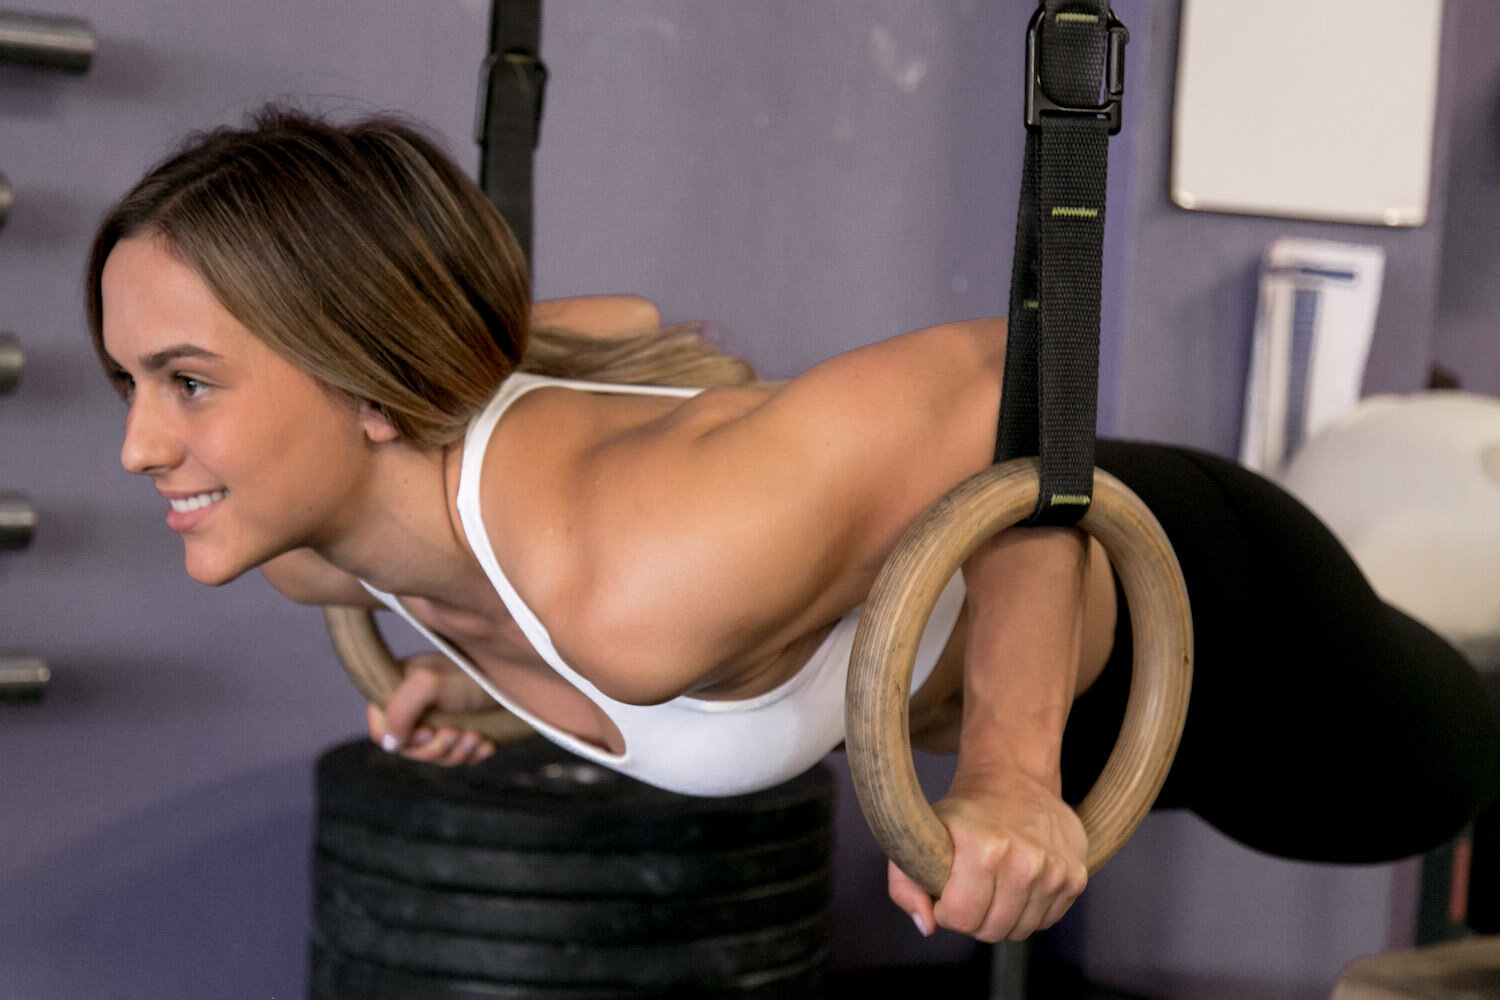 rings, muscle up, ring push up, gymnastics strength, gym, gym marrickville, squad training